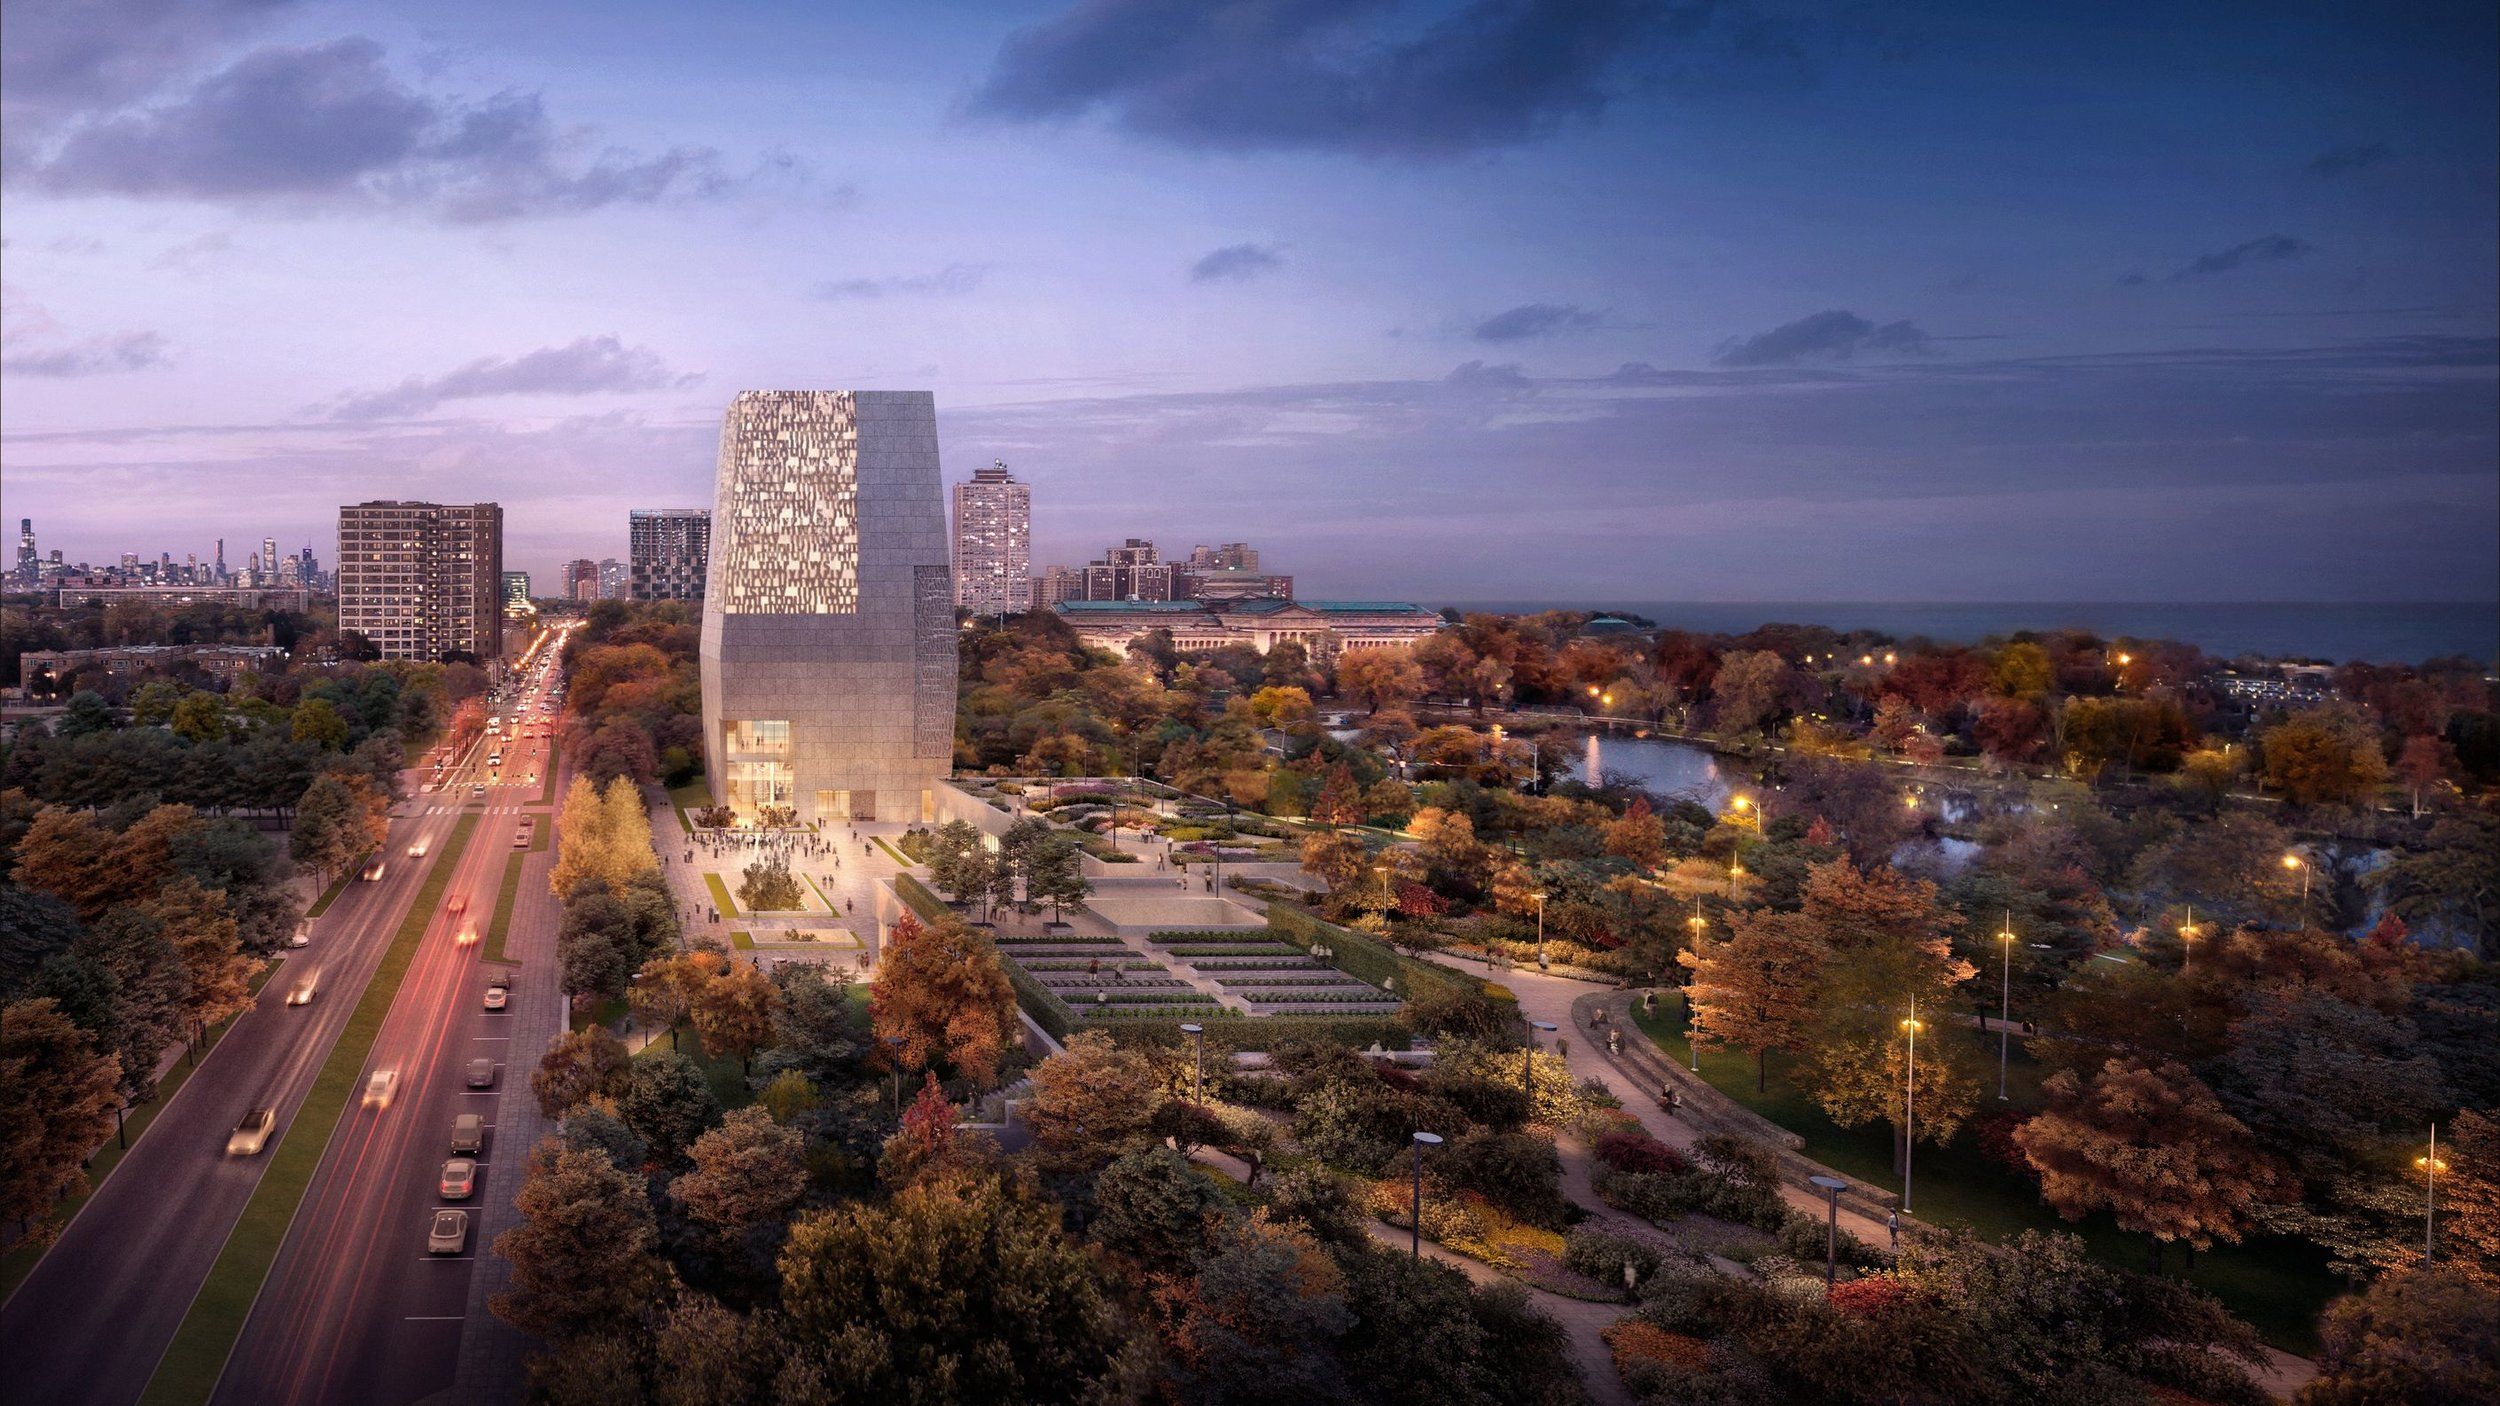 Image by DBOX for The Obama Foundation, Architecture: Tod Williams Billie Tsien Architects